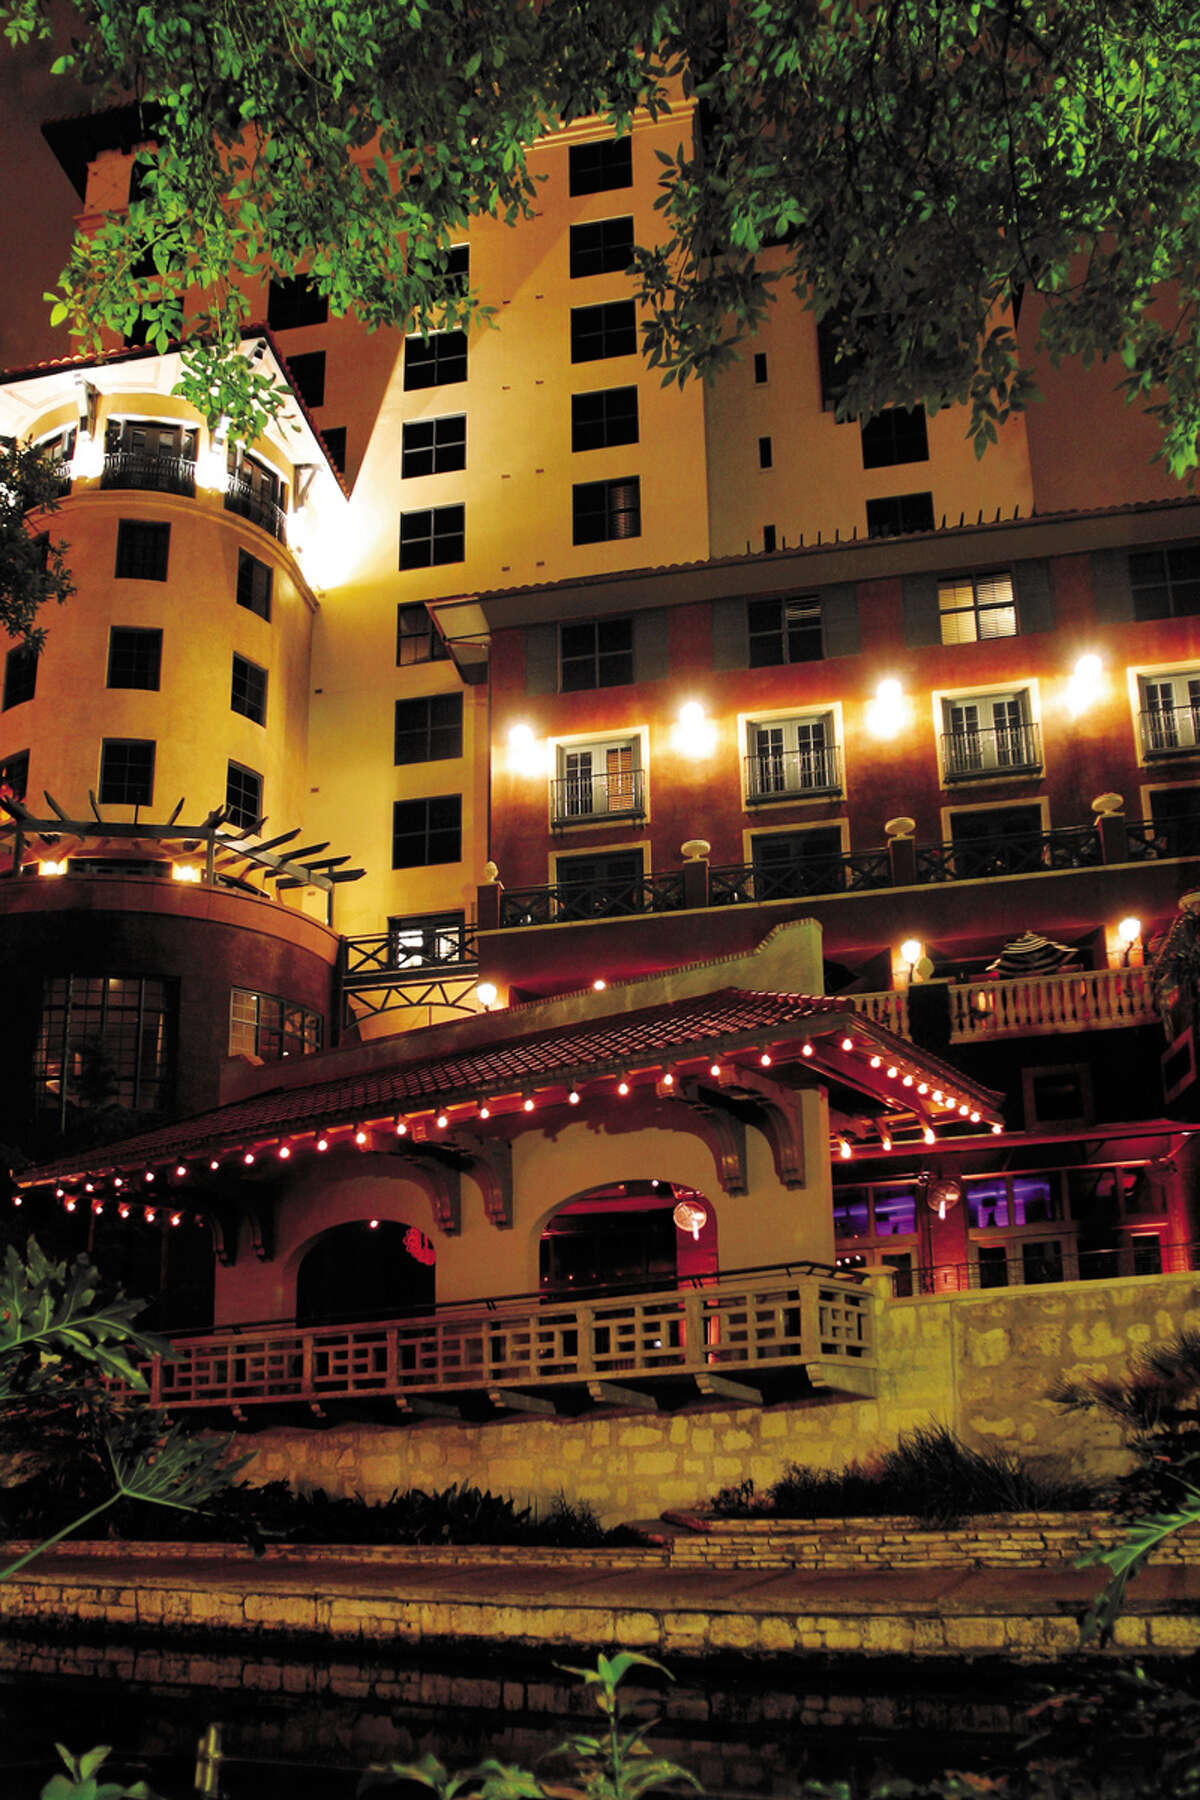 Hotel Valencia No. 11 in list of Top Value for Money Hotels - United States